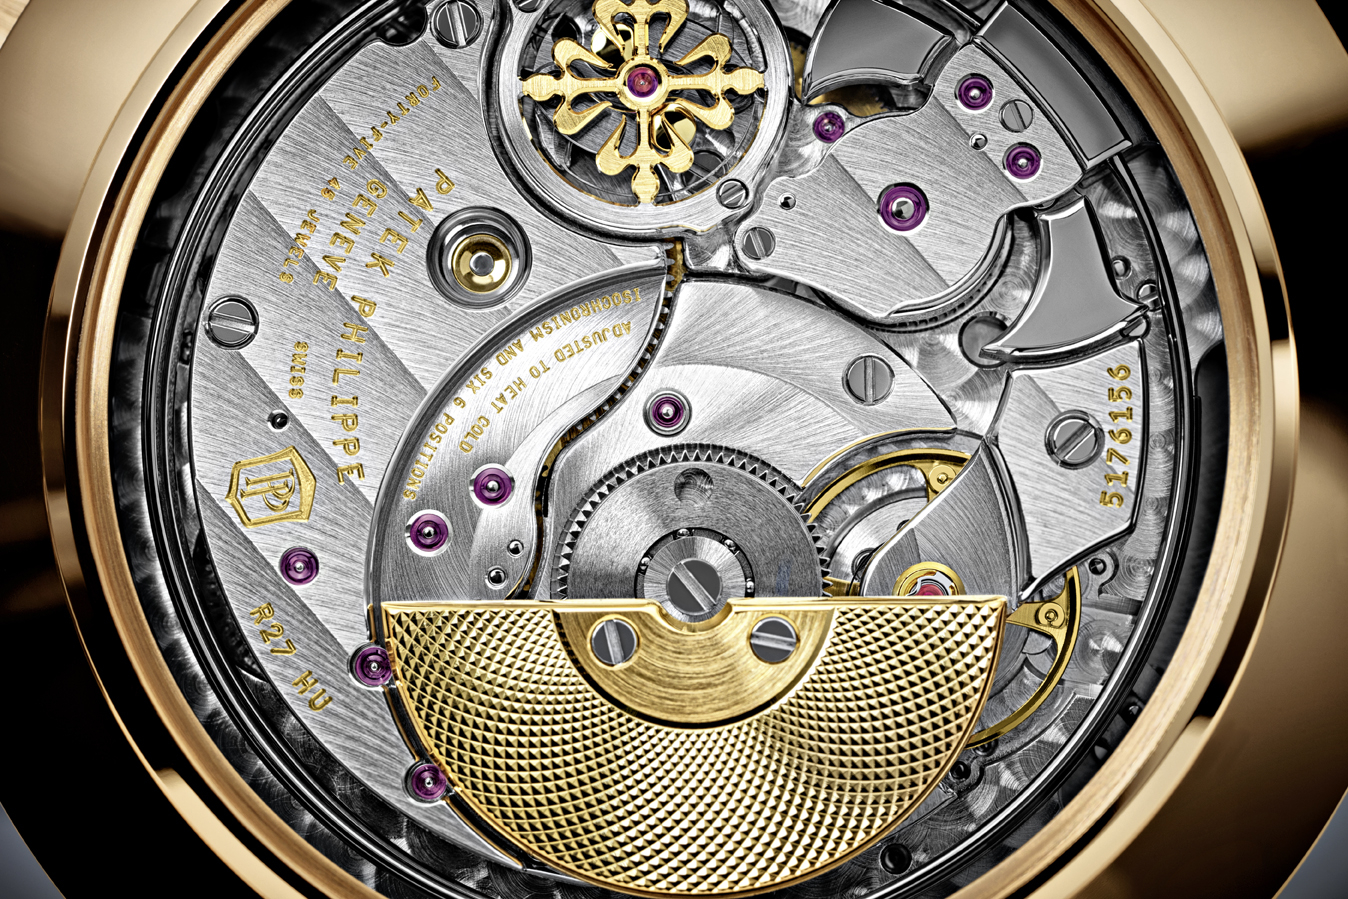 Grand Complication - 5531R-001 - 5531R-001